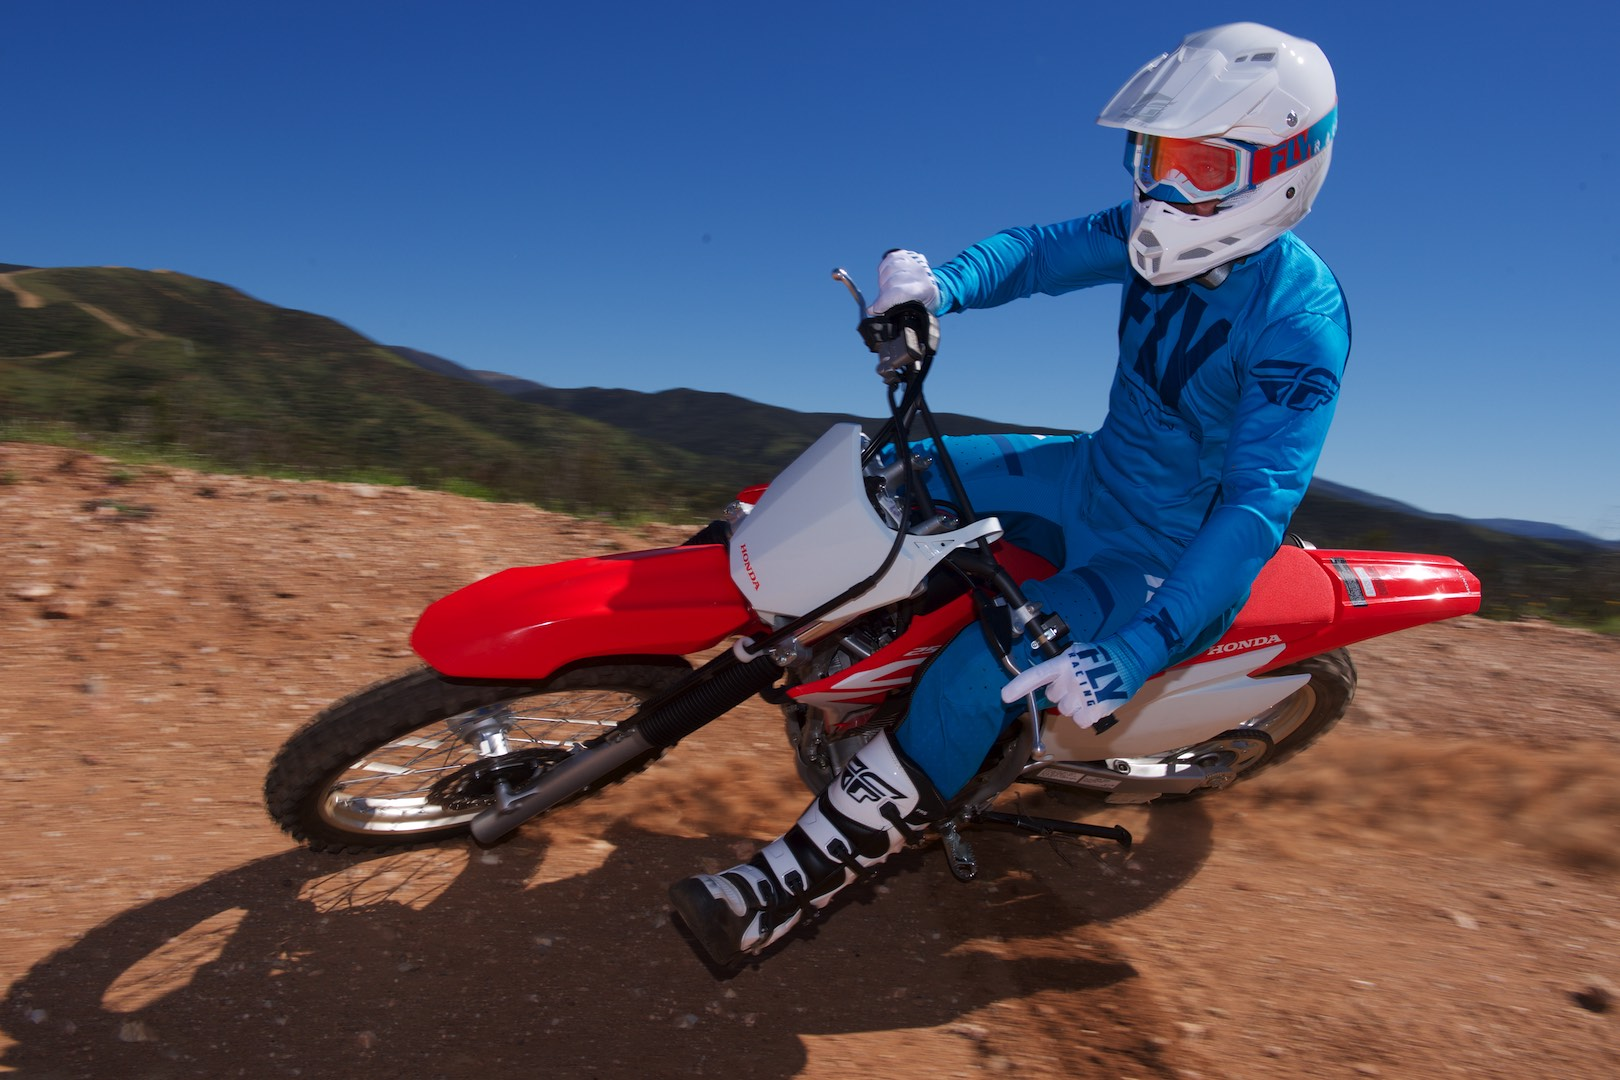 2019 Honda CRF250F off-road